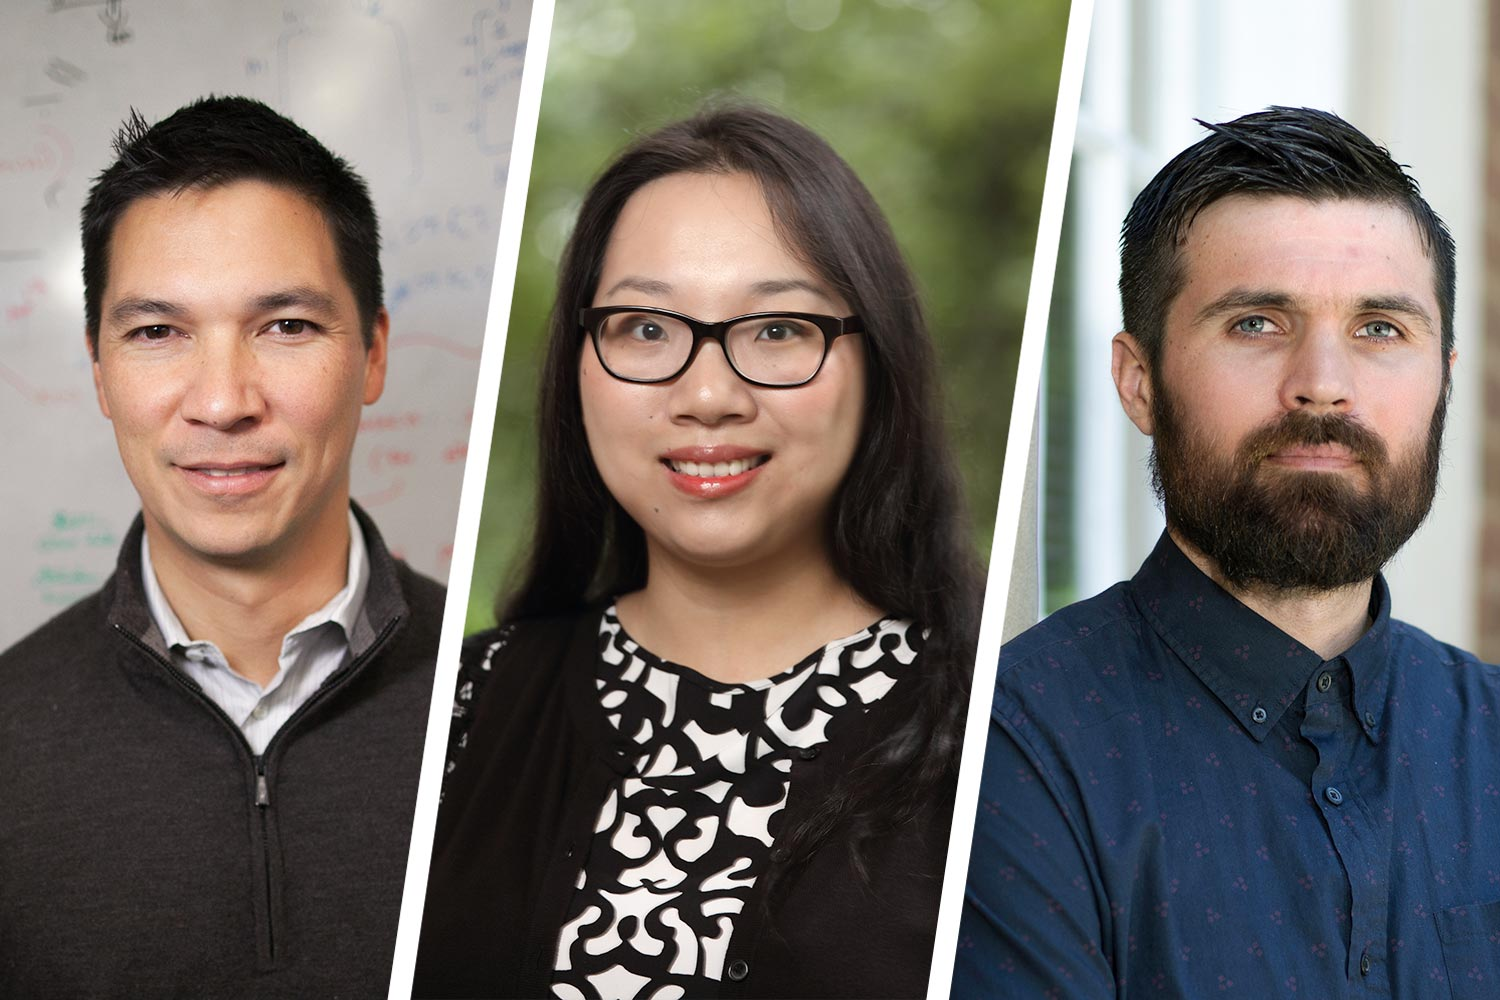 Engineering researchers Kamin Whitehouse, Lu Feng and Cody Fleming are teaming to make wireless communication between moving autonomous vehicles safe enough for the technology to realize its potential.